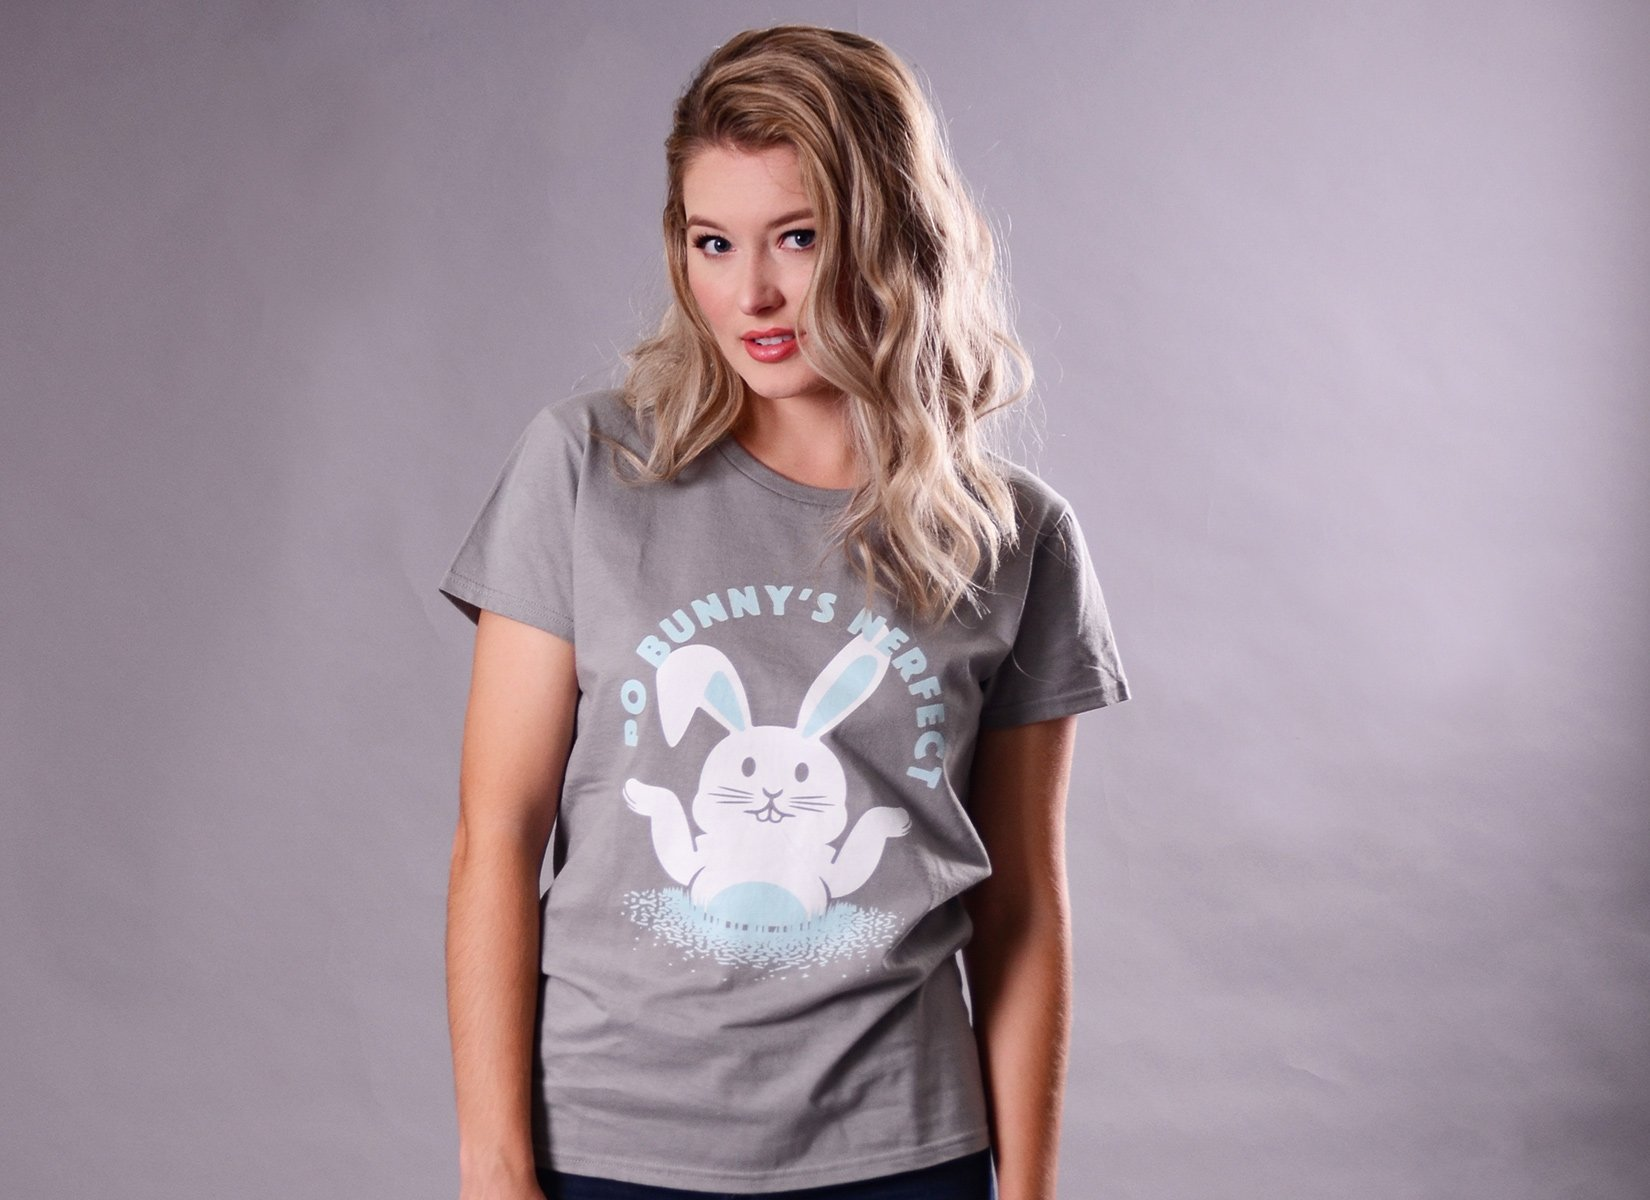 Po Bunny's Nerfect on Womens T-Shirt